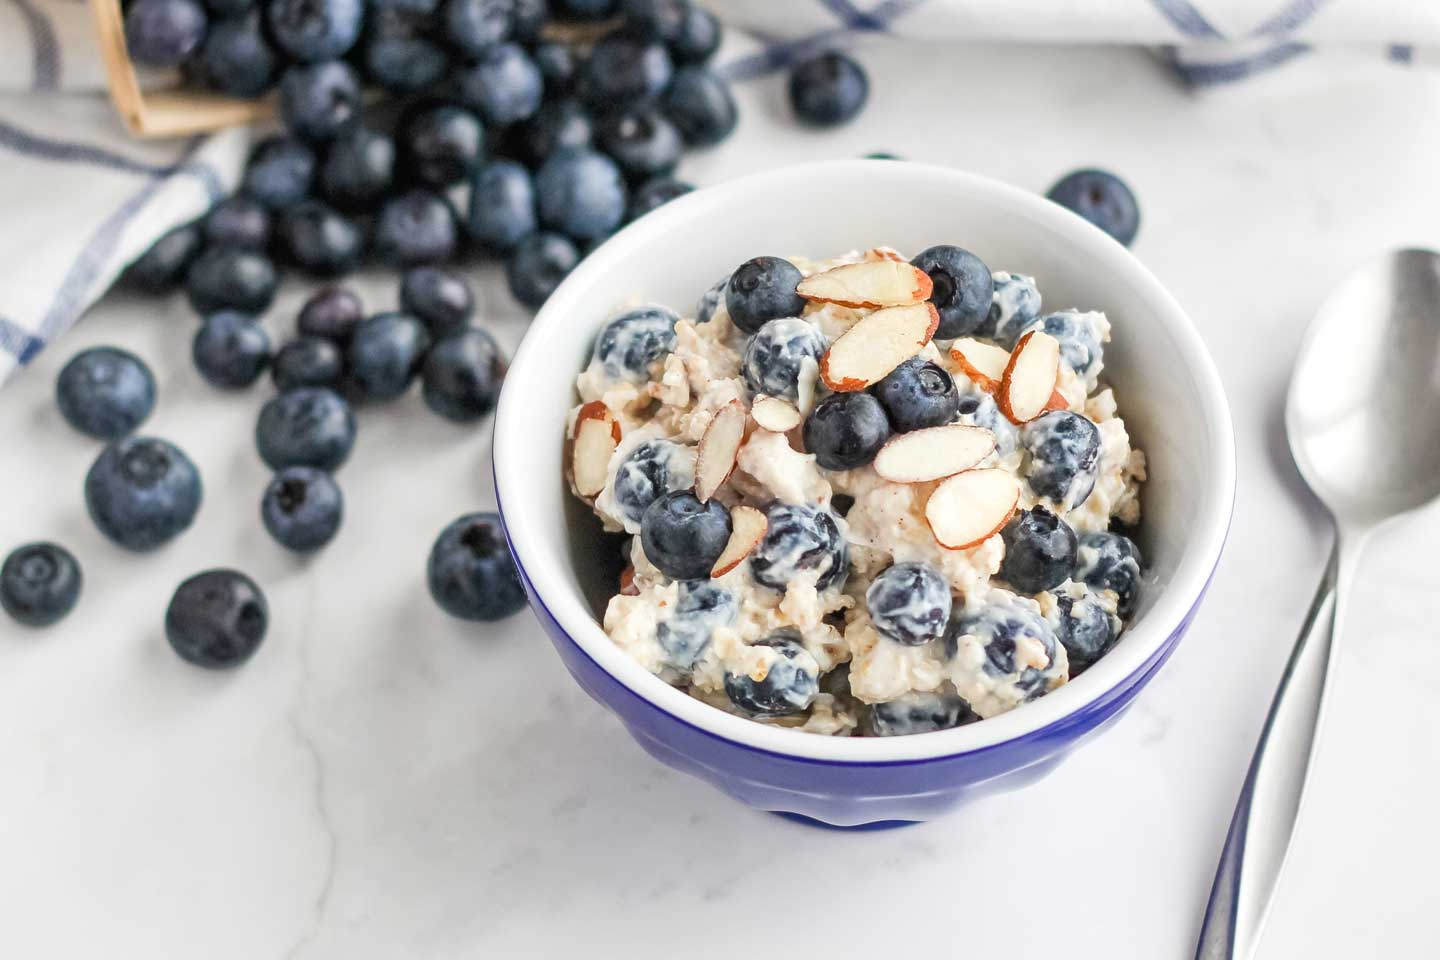 A little blue serving bowl filled with this oats recipe, with a spoon and a cascade of extra blueberries alongside.